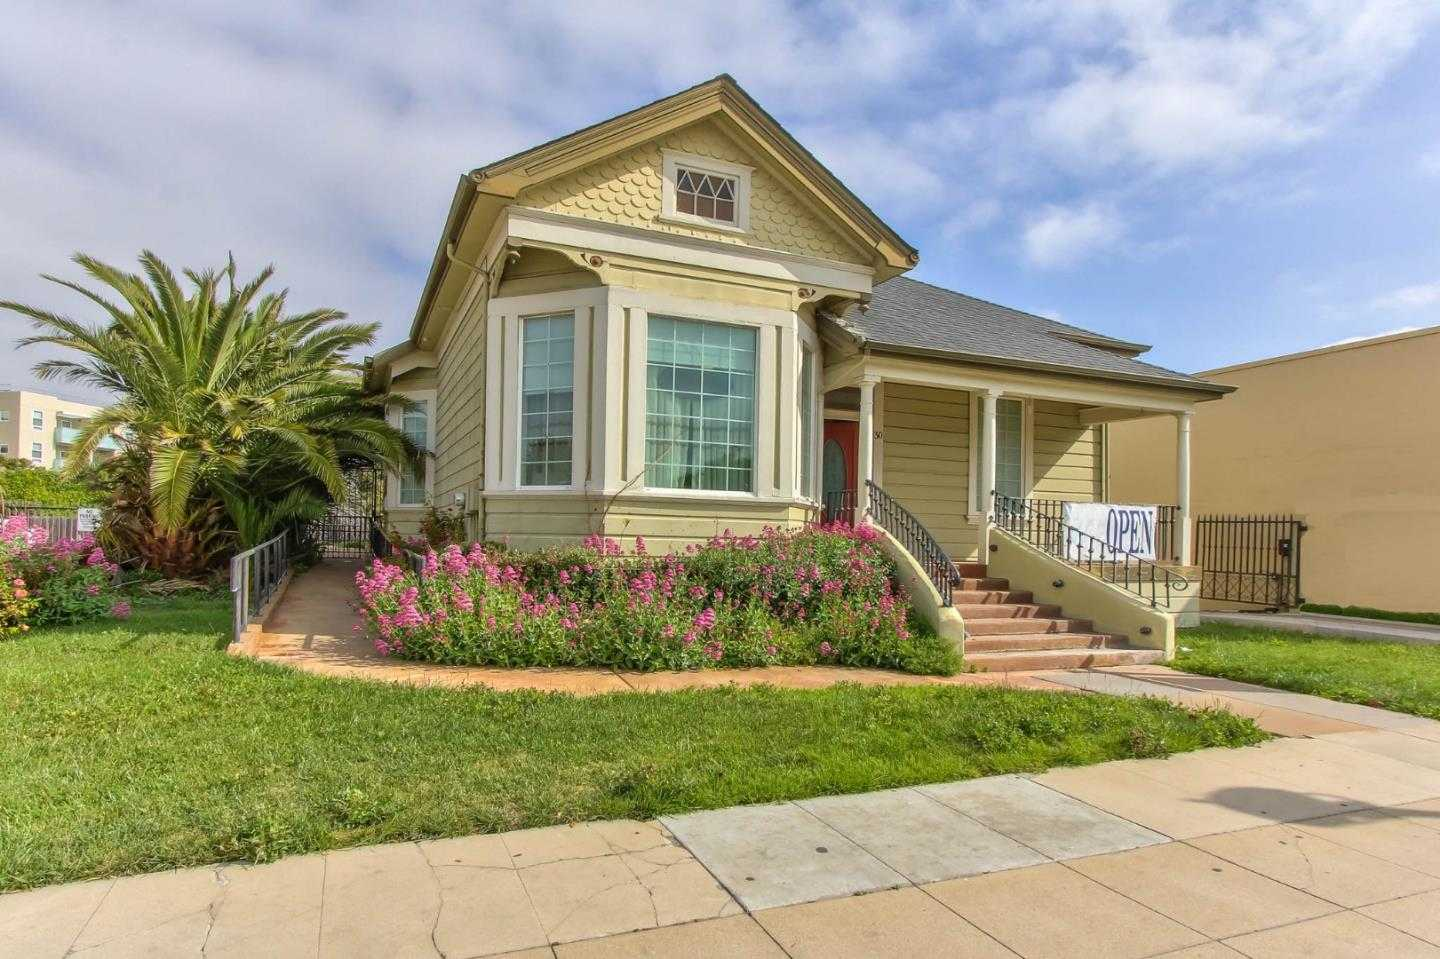 $549,000 - 3Br/2Ba -  for Sale in Salinas